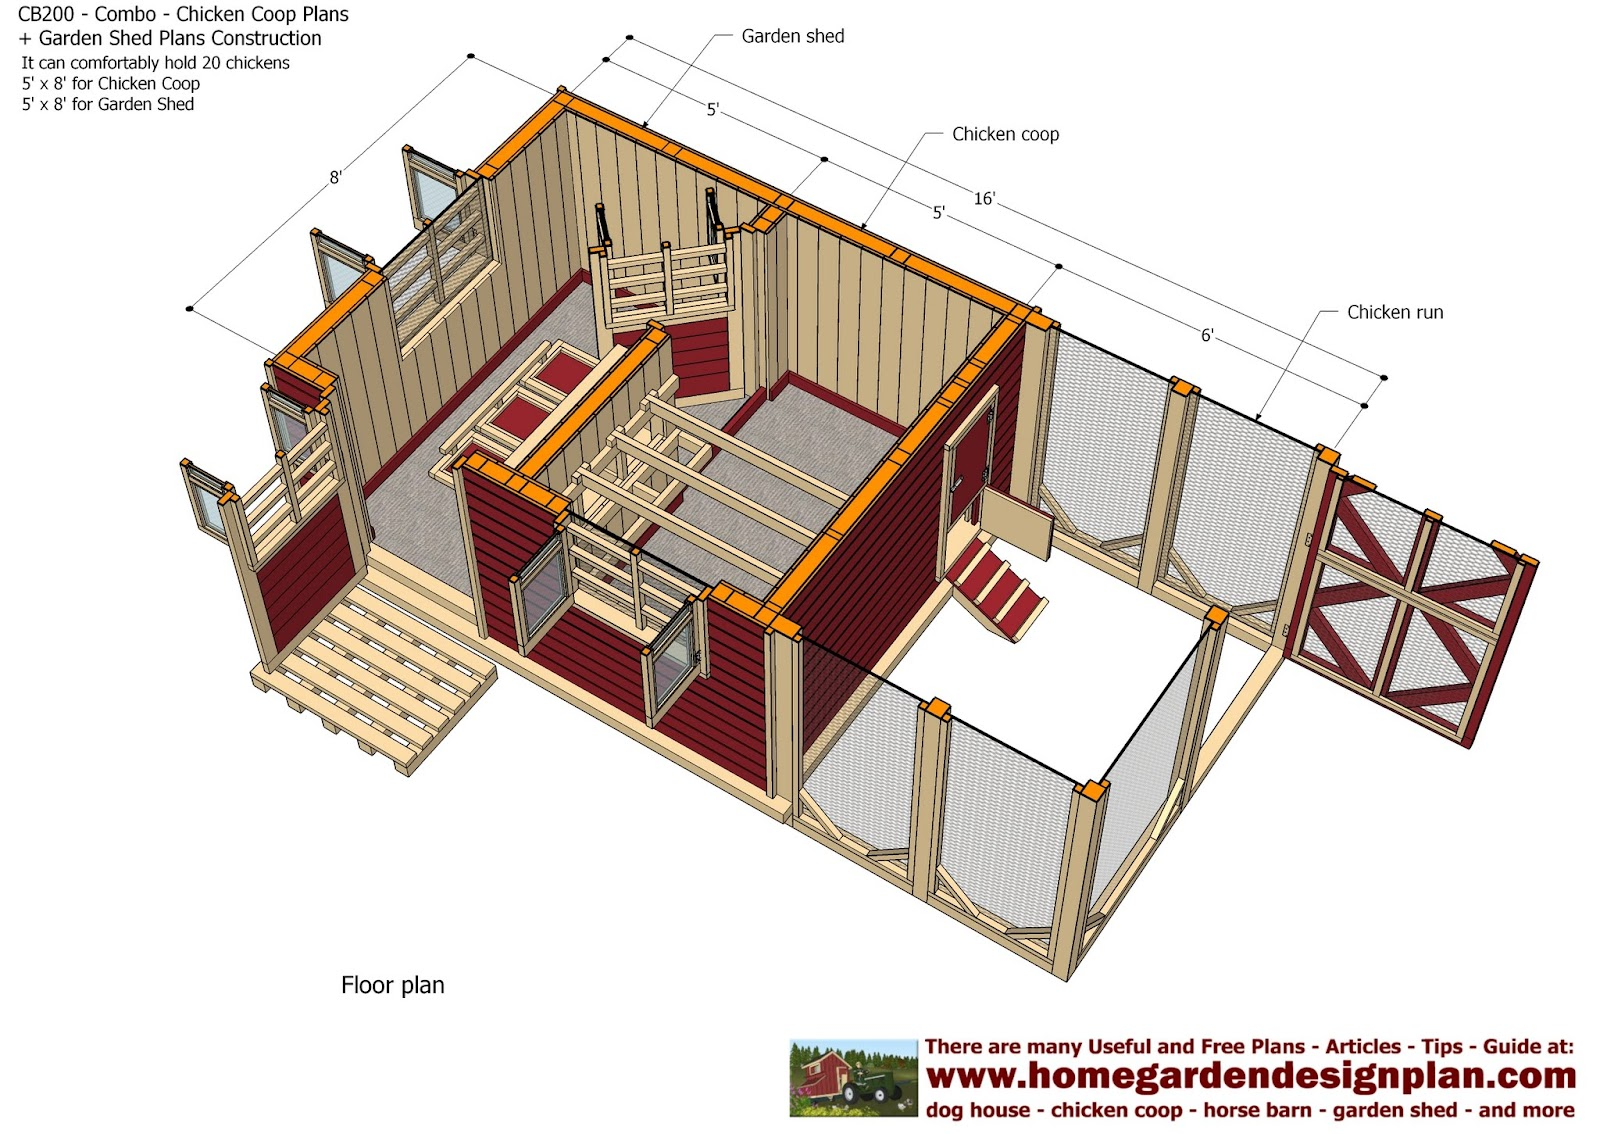 Home garden plans cb200 combo plans chicken coop for Dog kennel shed combo plans